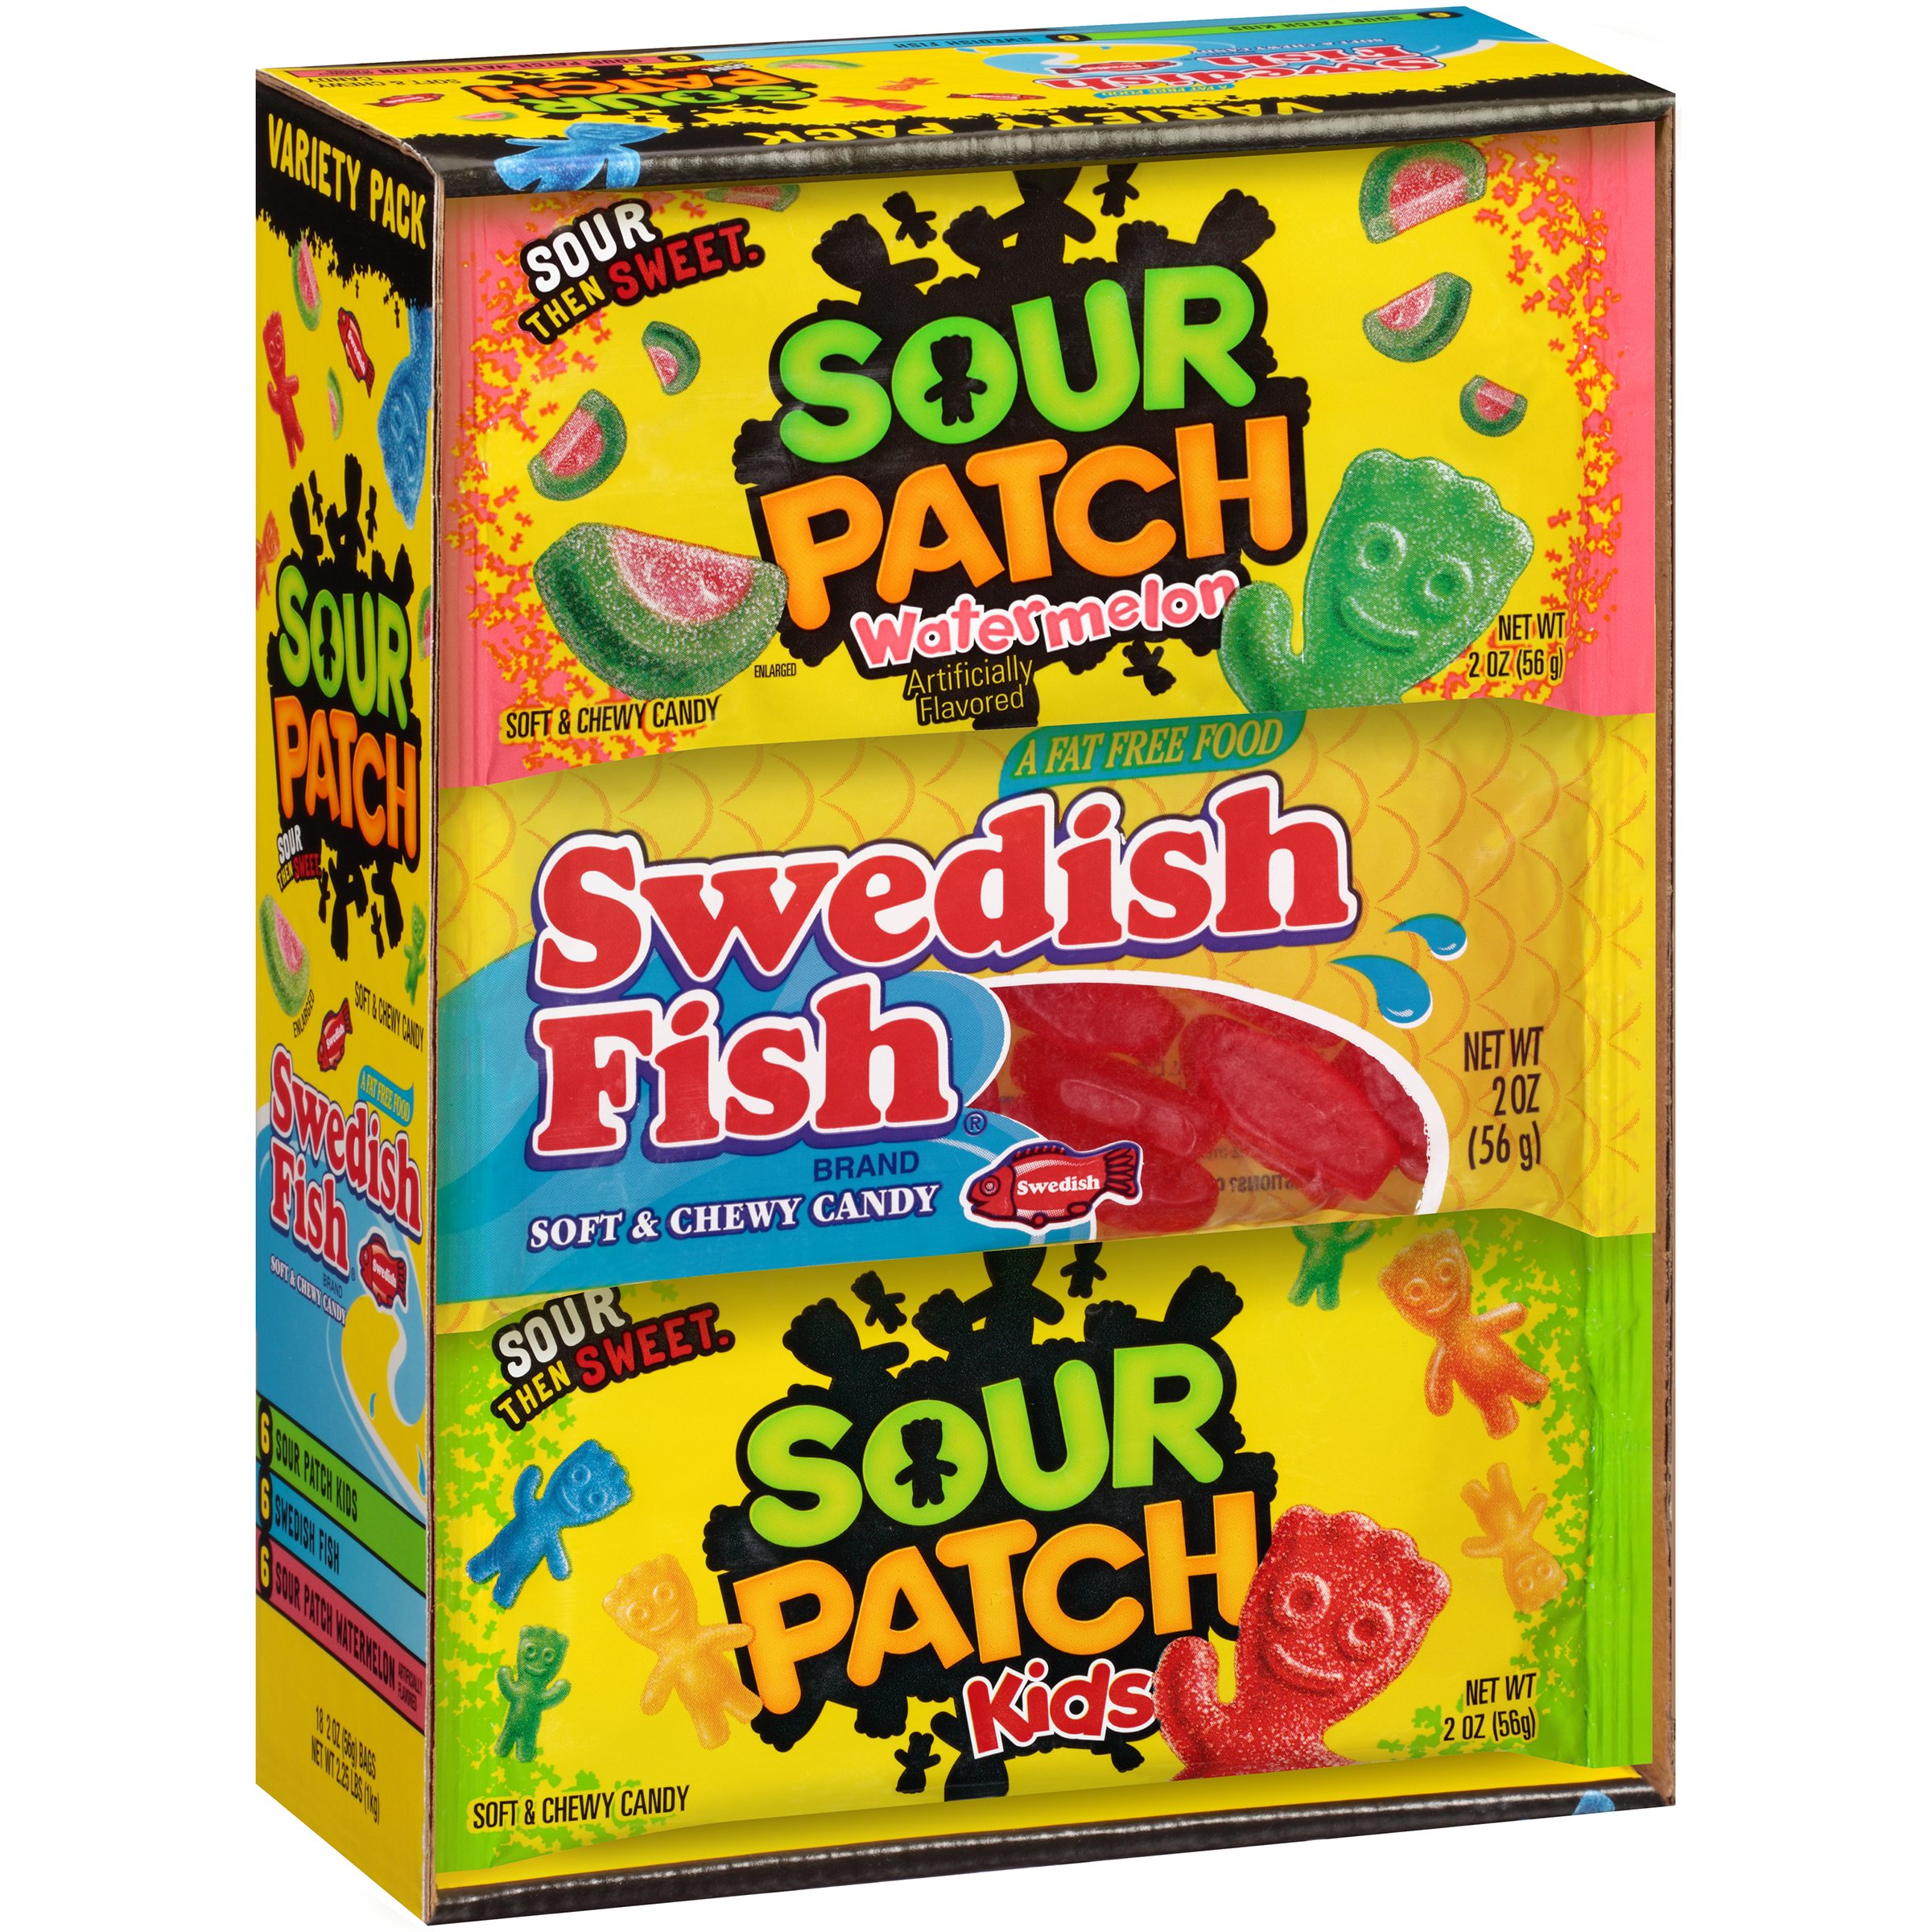 Sour Patch Watermelon, Sour Patch Kids, Swedish Fish Soft & Chewy Candies, 2 Oz., 18 Count